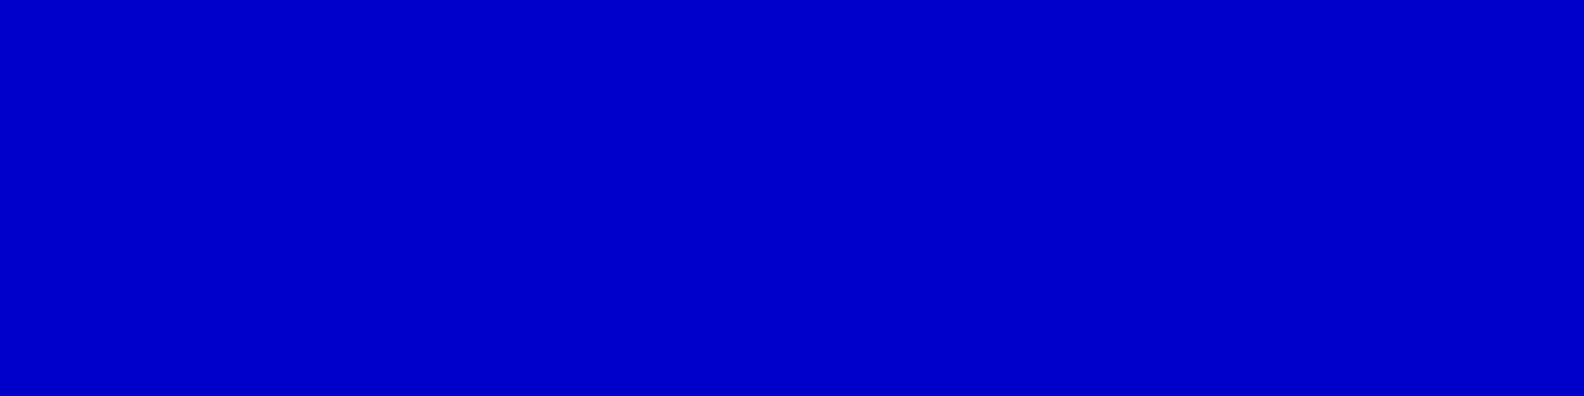 1584x396 Medium Blue Solid Color Background